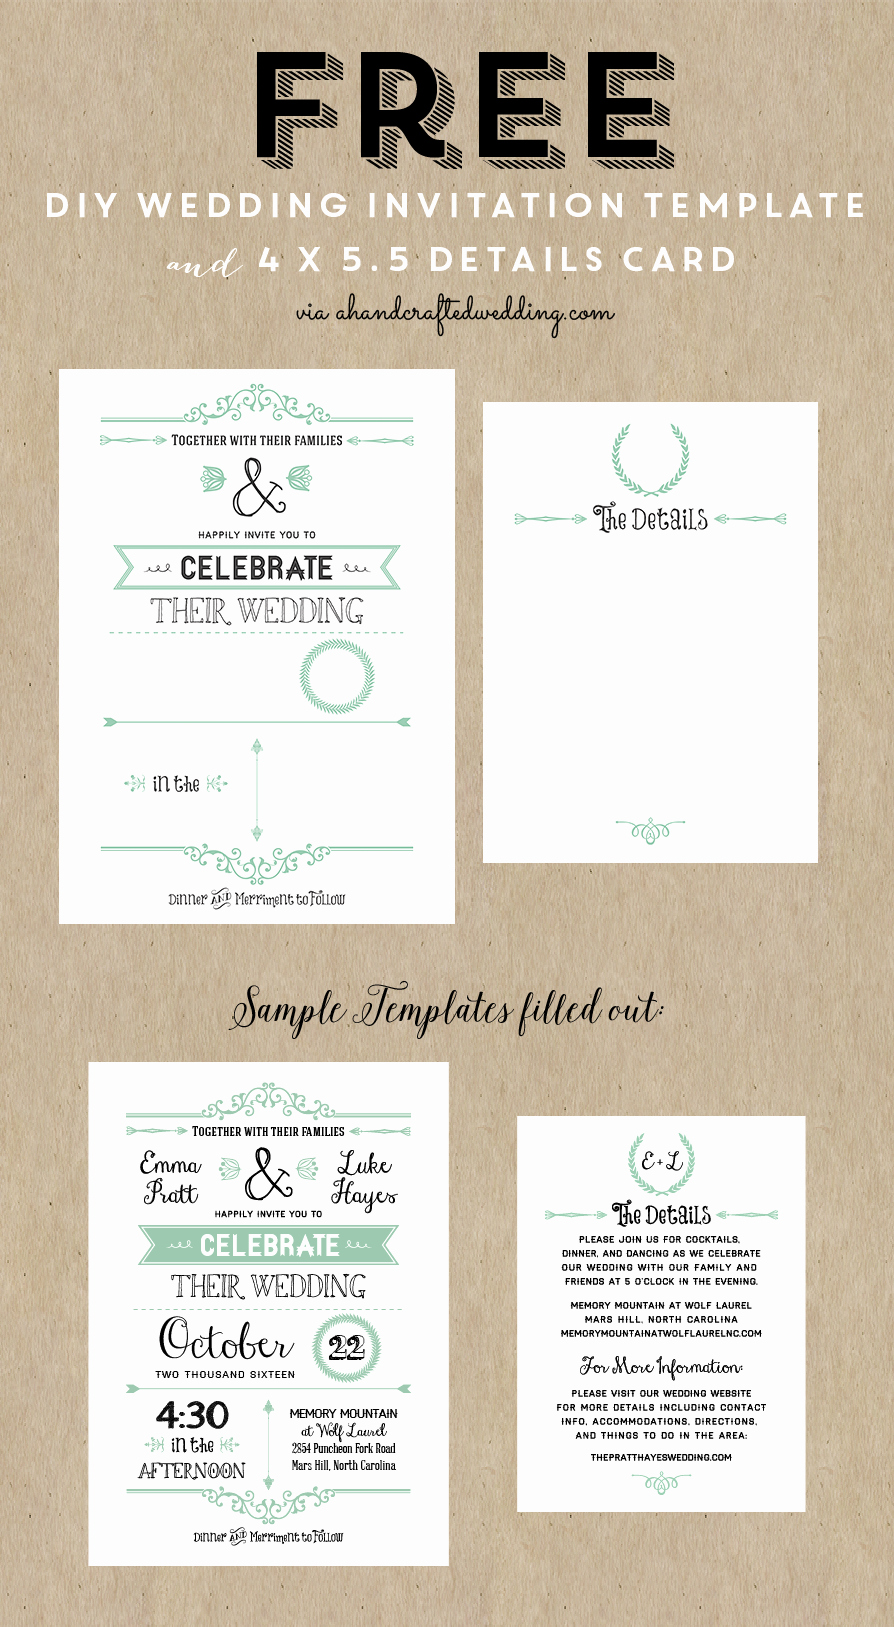 Wedding Invitation Templates Free Fresh Best 25 Free Wedding Invitation Templates Ideas On